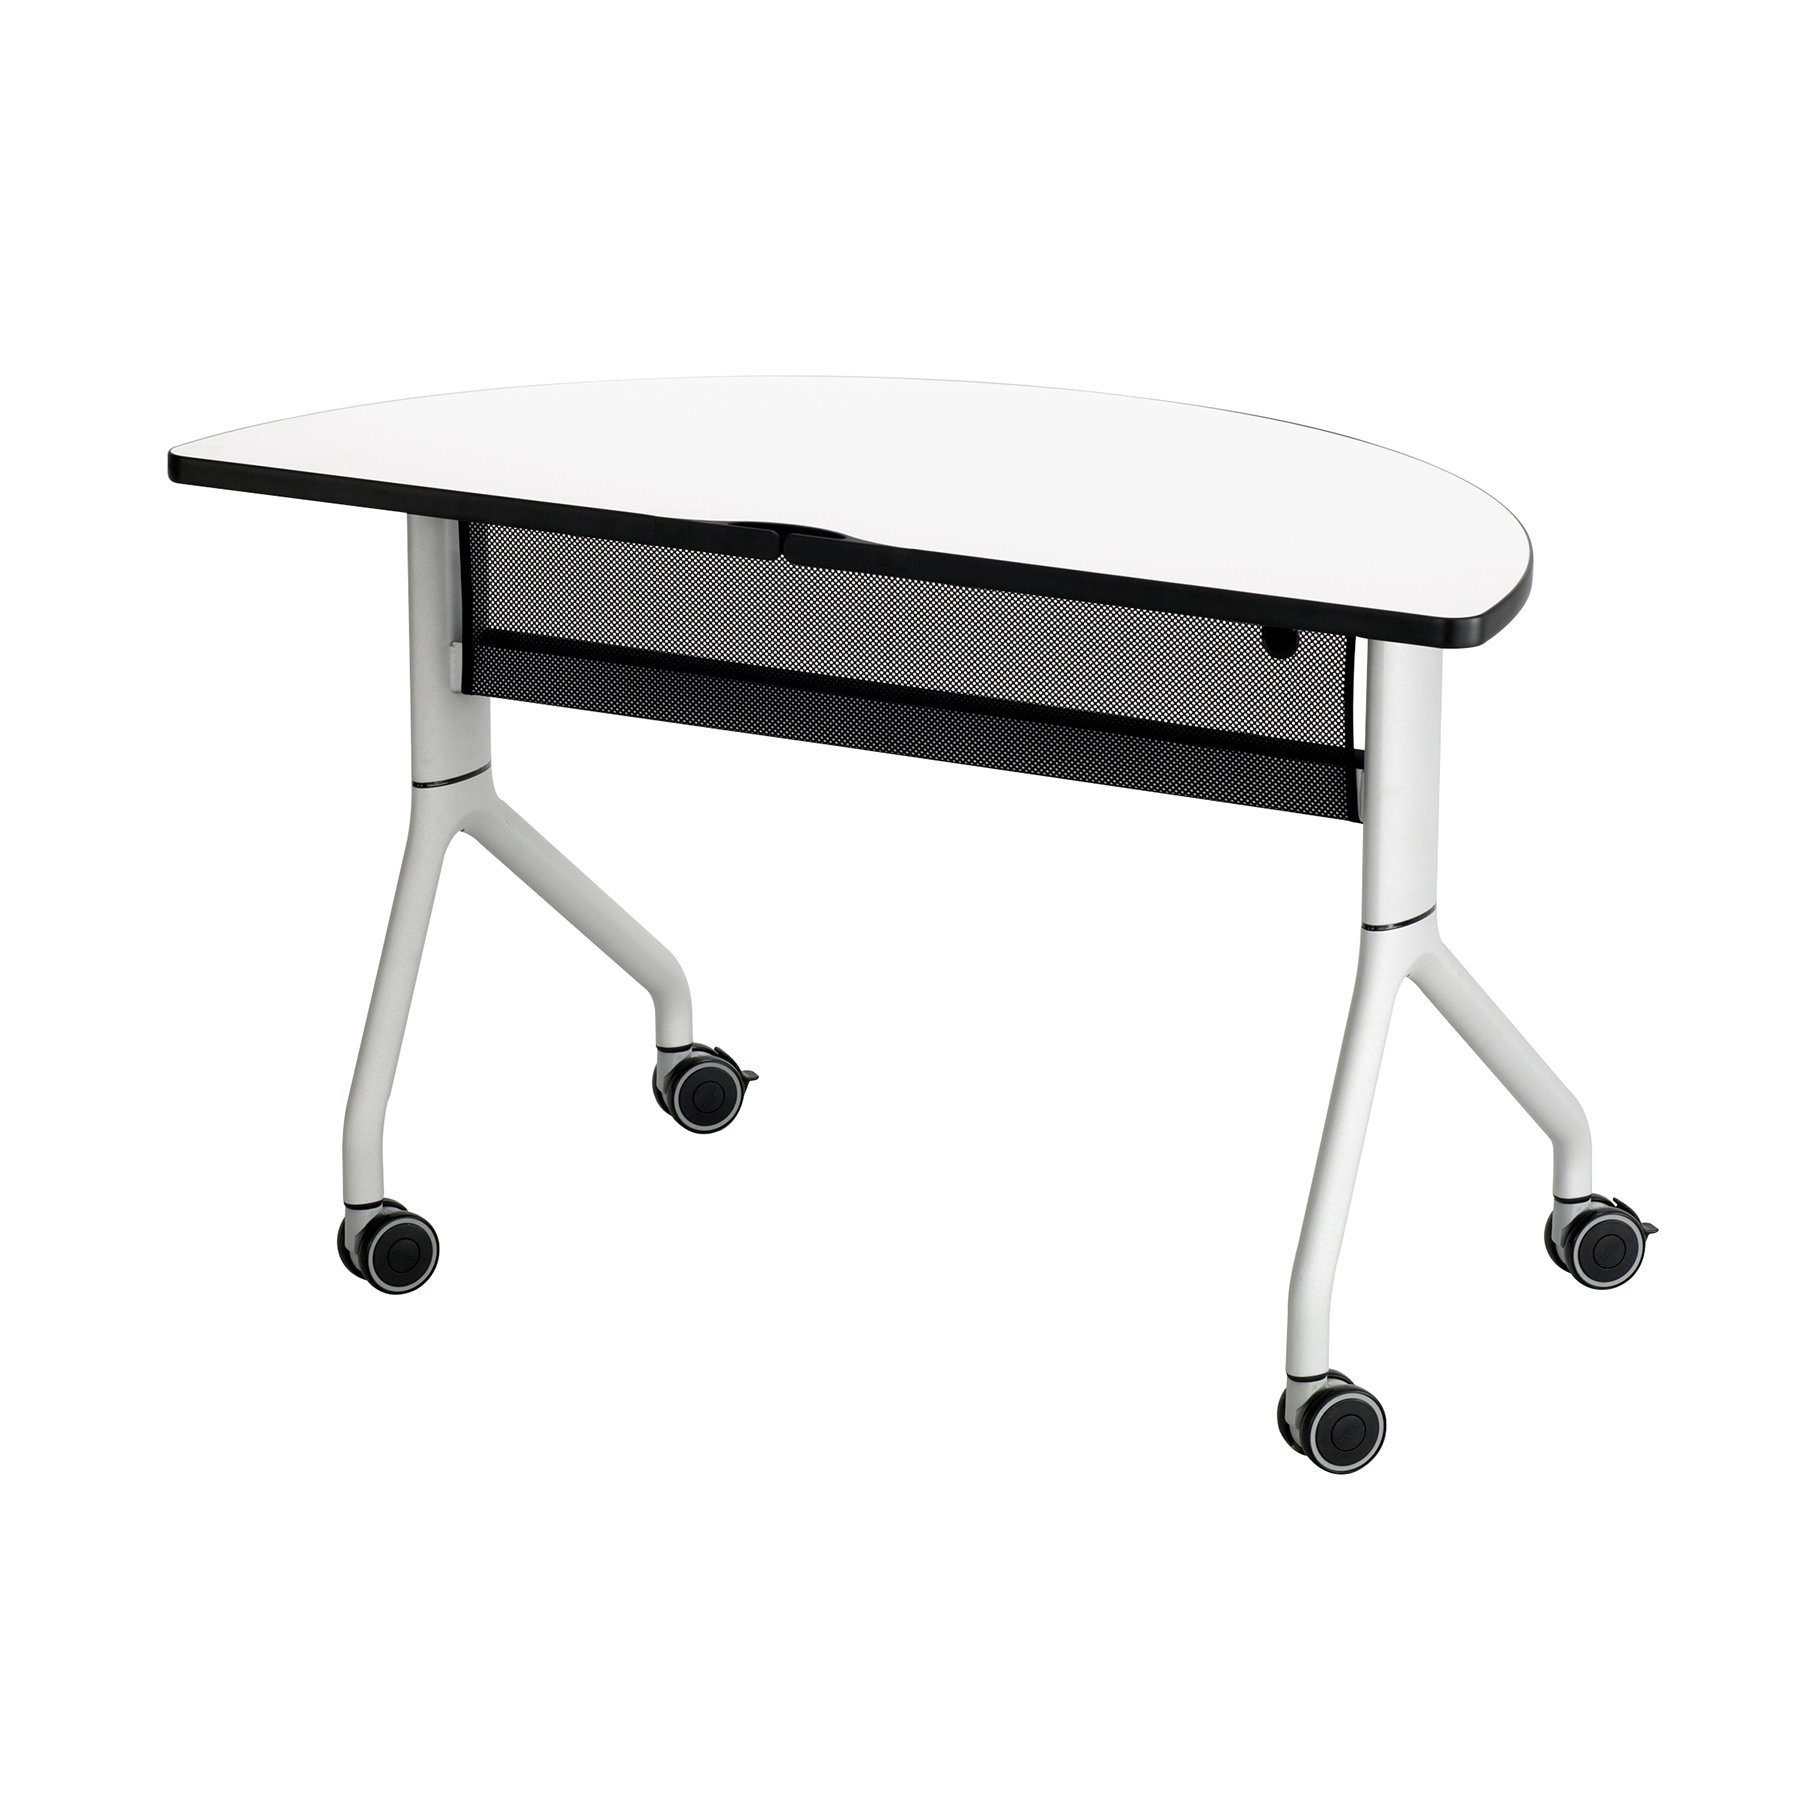 Safco Rumba Half-Round Nesting Table - 48in. x 24in. White/Silver, Model Number 2041DWSL